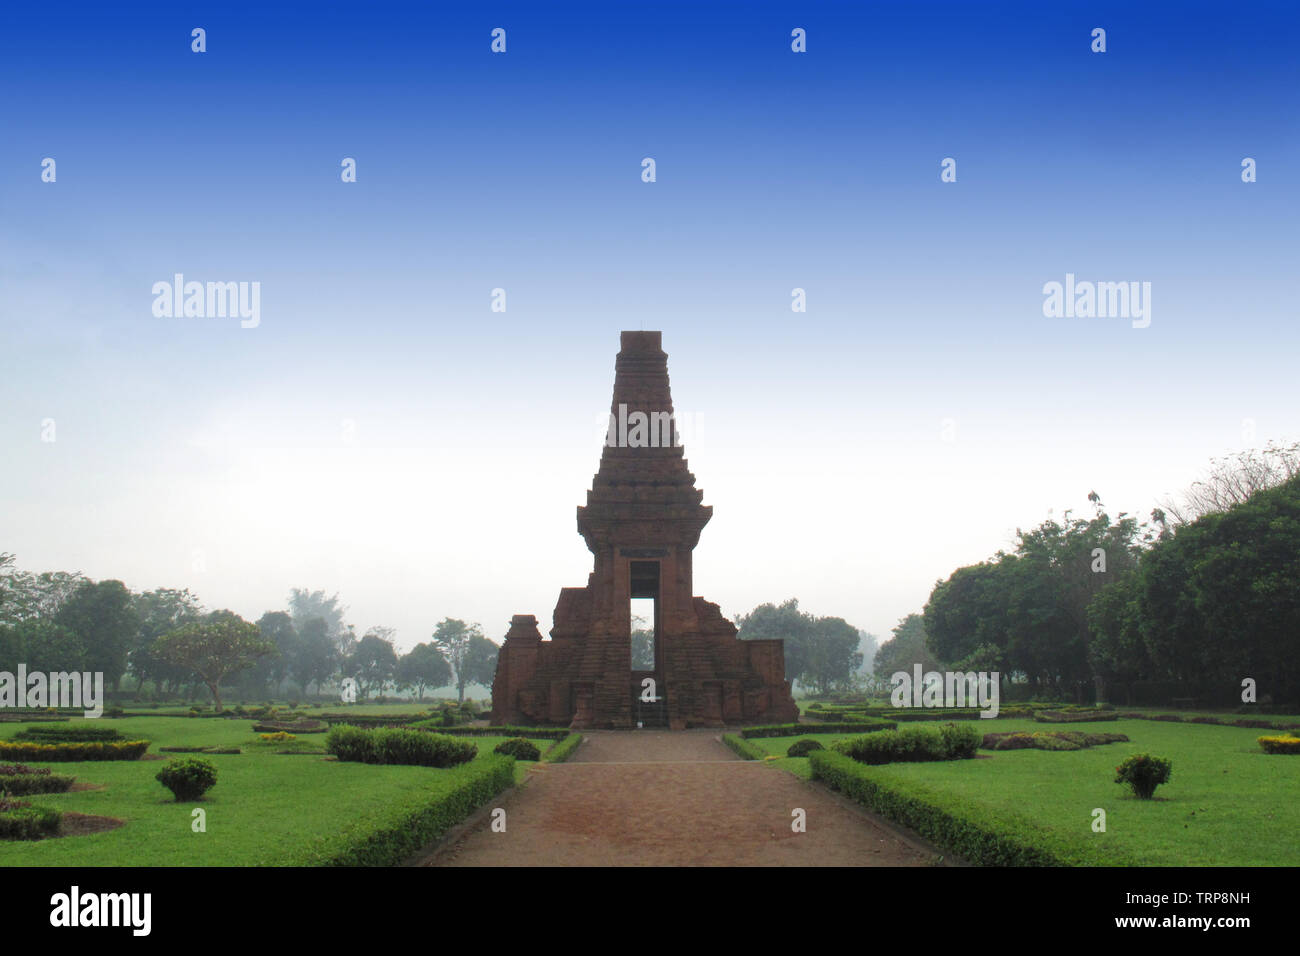 Bajangratu Temple in Mojokerto - Indonesia, one of the historical sites left by the Majapahit Kingdom - Stock Image